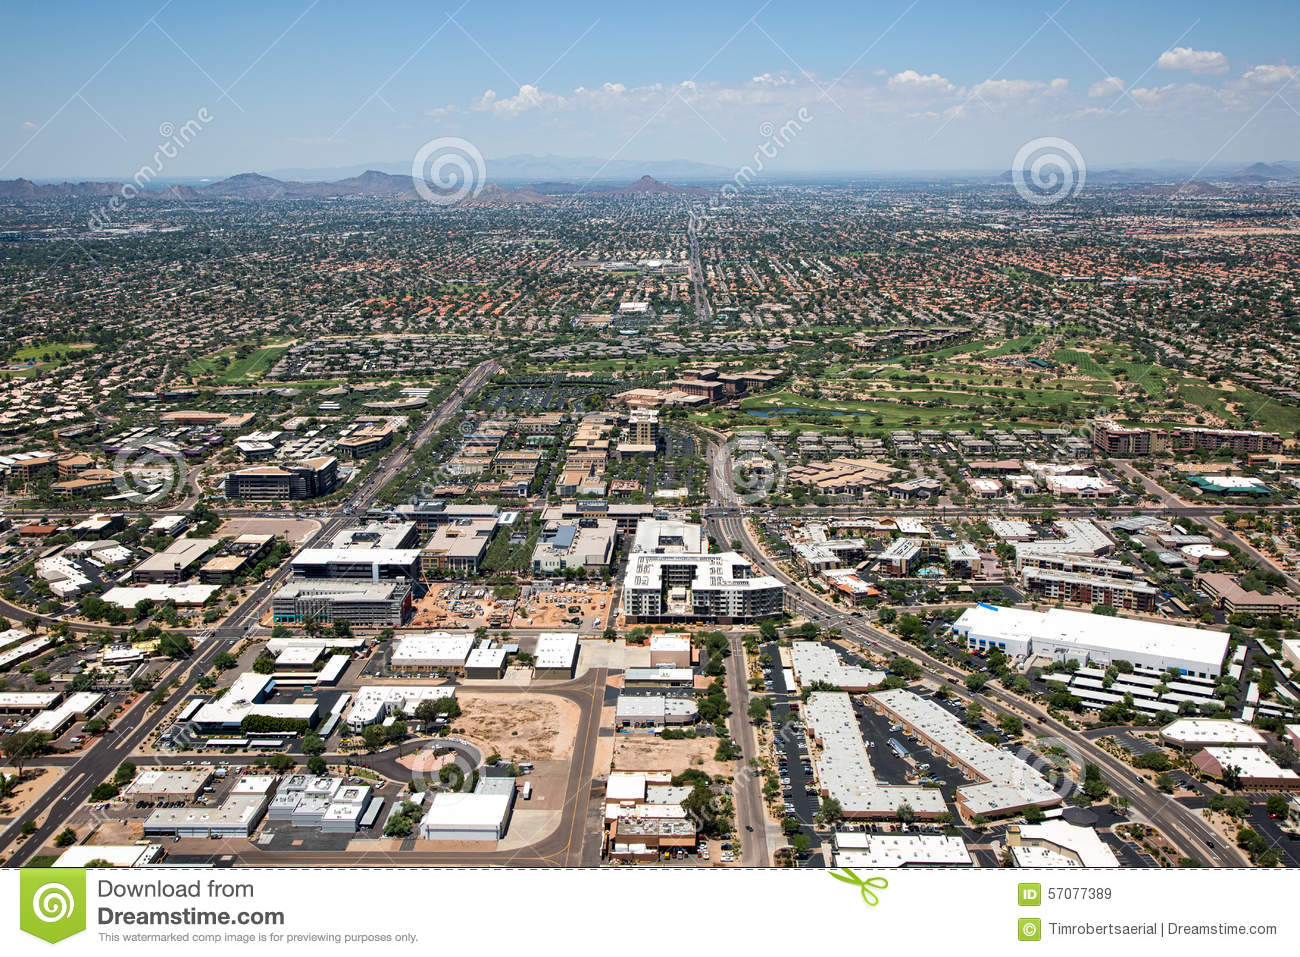 Tucson Az Population >> North Scottsdale, Arizona Stock Photo - Image: 57077389